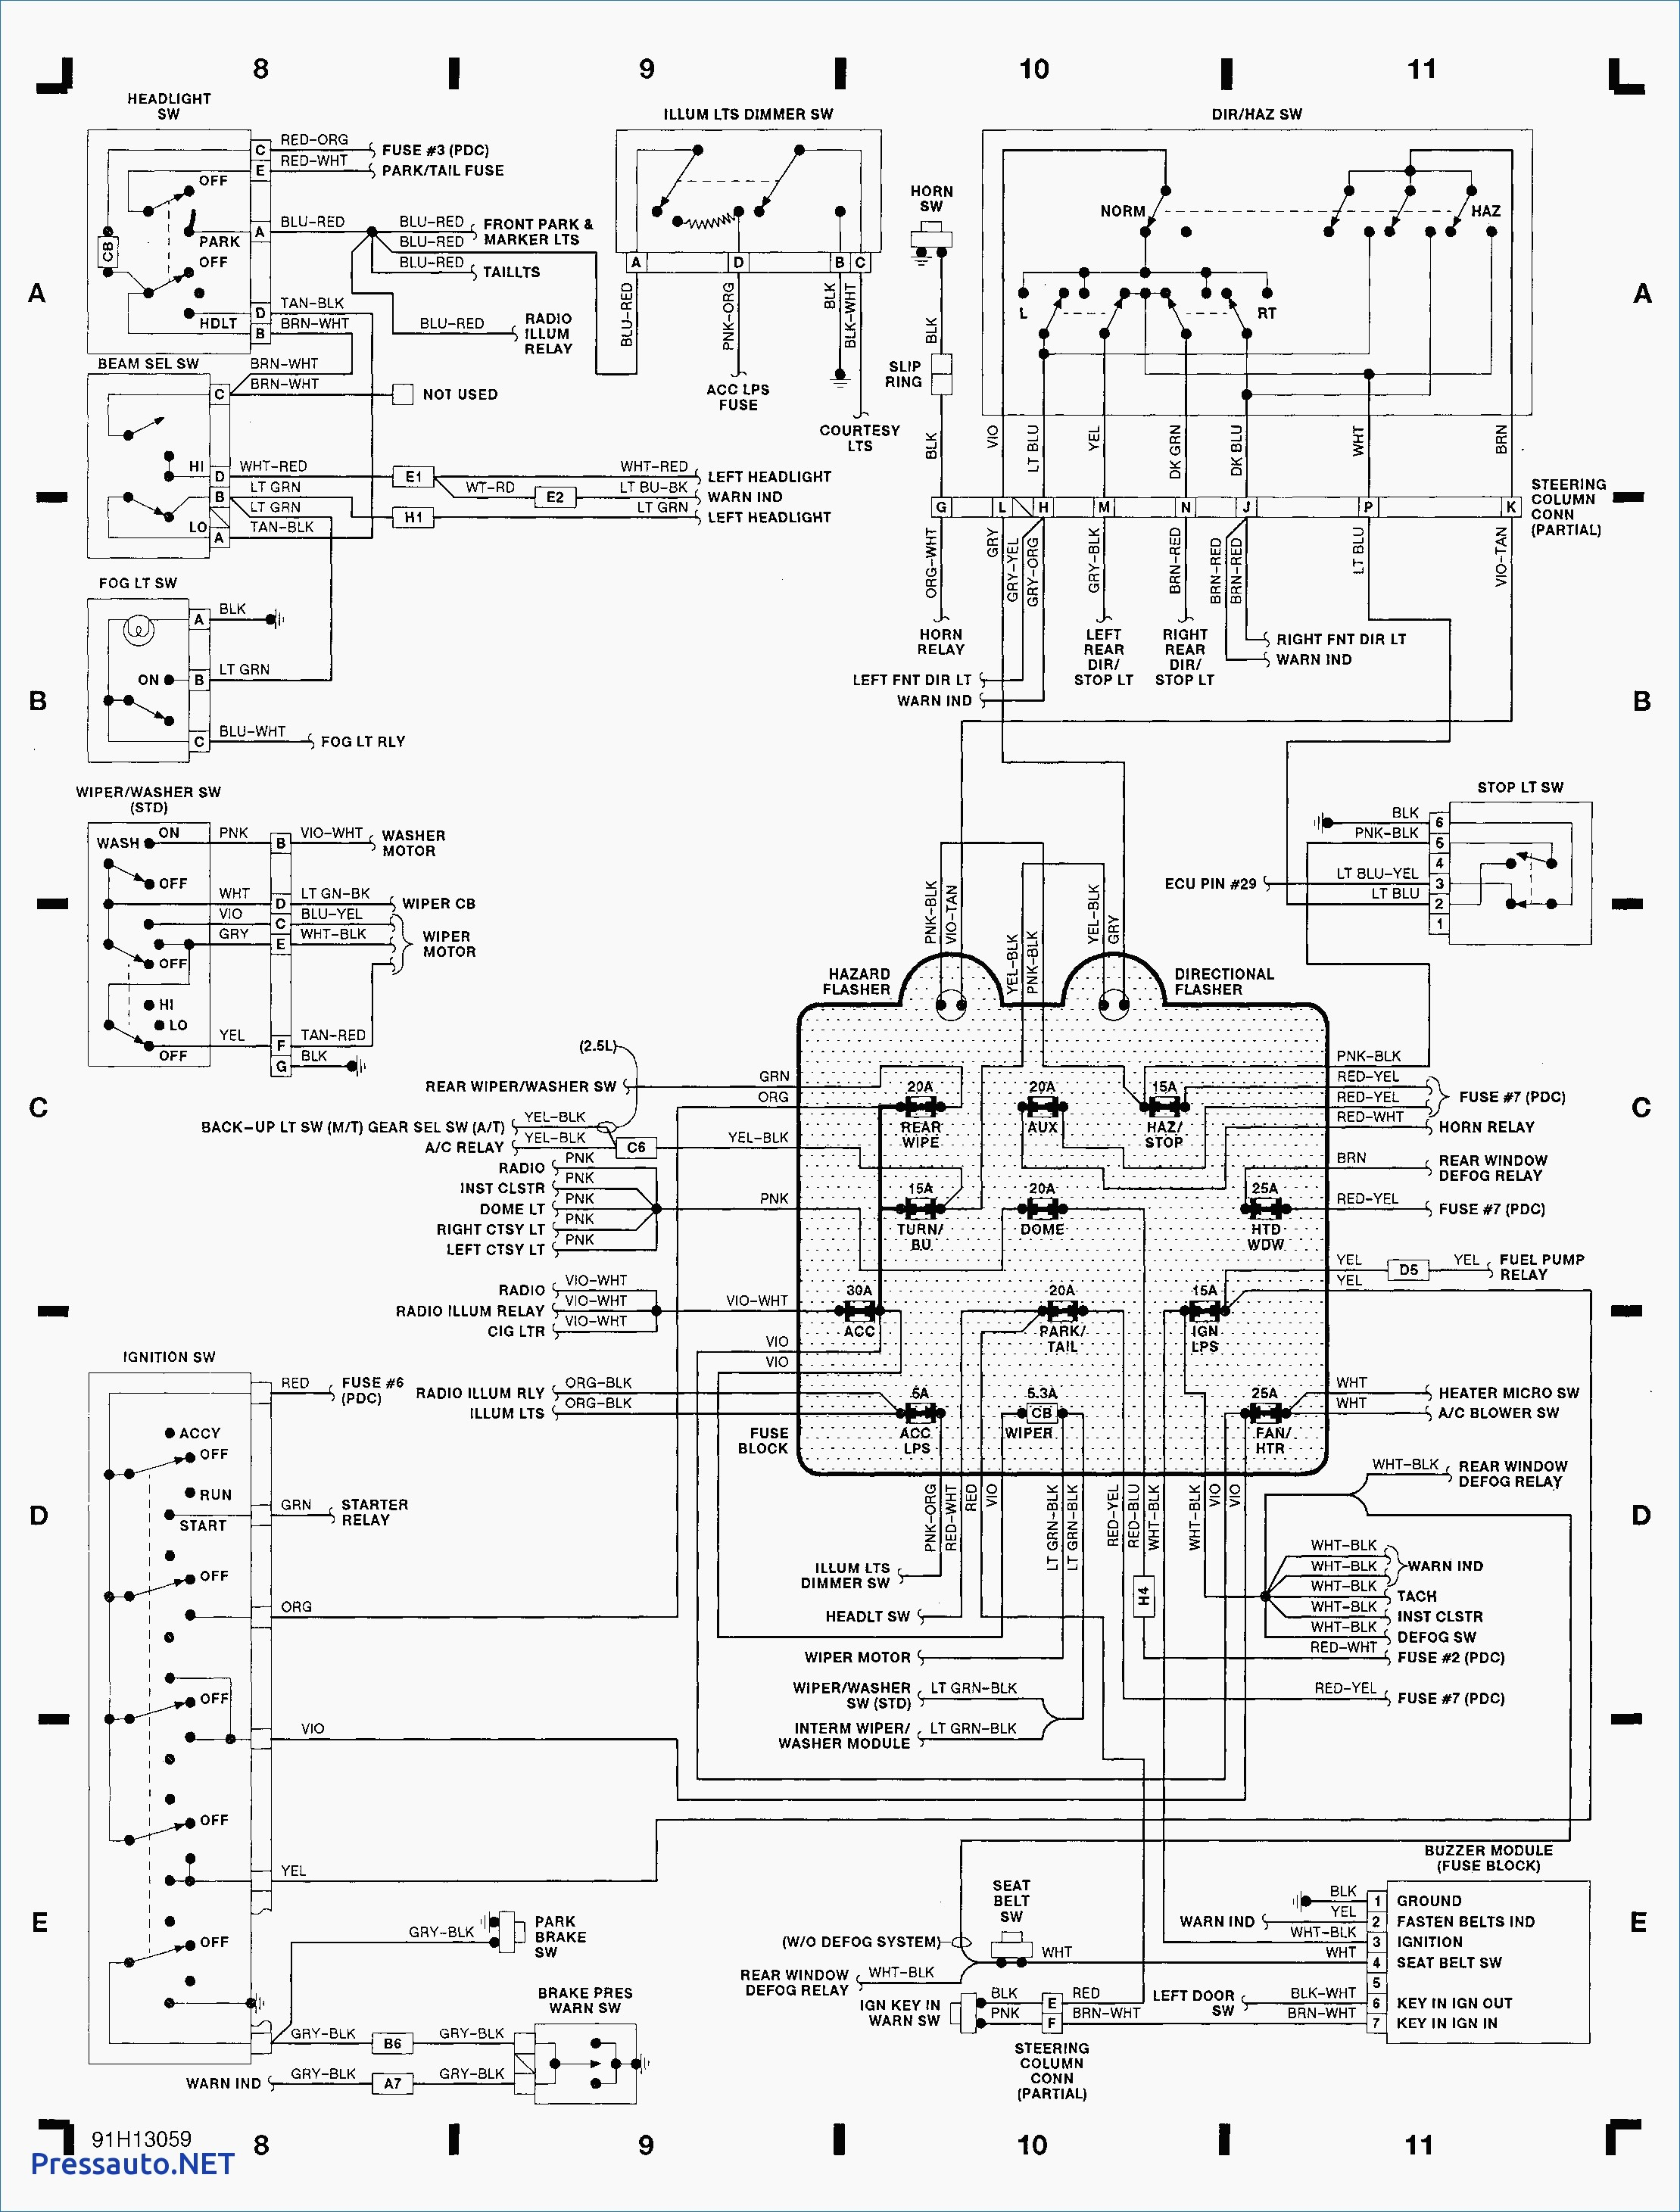 1988 Jeep Yj Wiring Harness Diagram - Wiring Diagram 500  Jeep Wrangler Wiring Harness on pontiac bonneville wiring harness, honda cr-v wiring harness, chrysler pacifica wiring harness, chevy aveo wiring harness, jeep grand wagoneer wiring harness, geo tracker wiring harness, 2001 jeep wiring harness, hummer h2 wiring harness, chevy cobalt wiring harness, jeep wrangler wiring sleeve, 2004 jeep wiring harness, jeep transmission wiring harness, jeep tail light wiring harness, jeep wrangler wiring connector, mazda rx7 wiring harness, jeep wiring harness diagram, dodge dakota wiring harness, amc amx wiring harness, jeep wrangler trailer wiring, jeep patriot wiring harness,